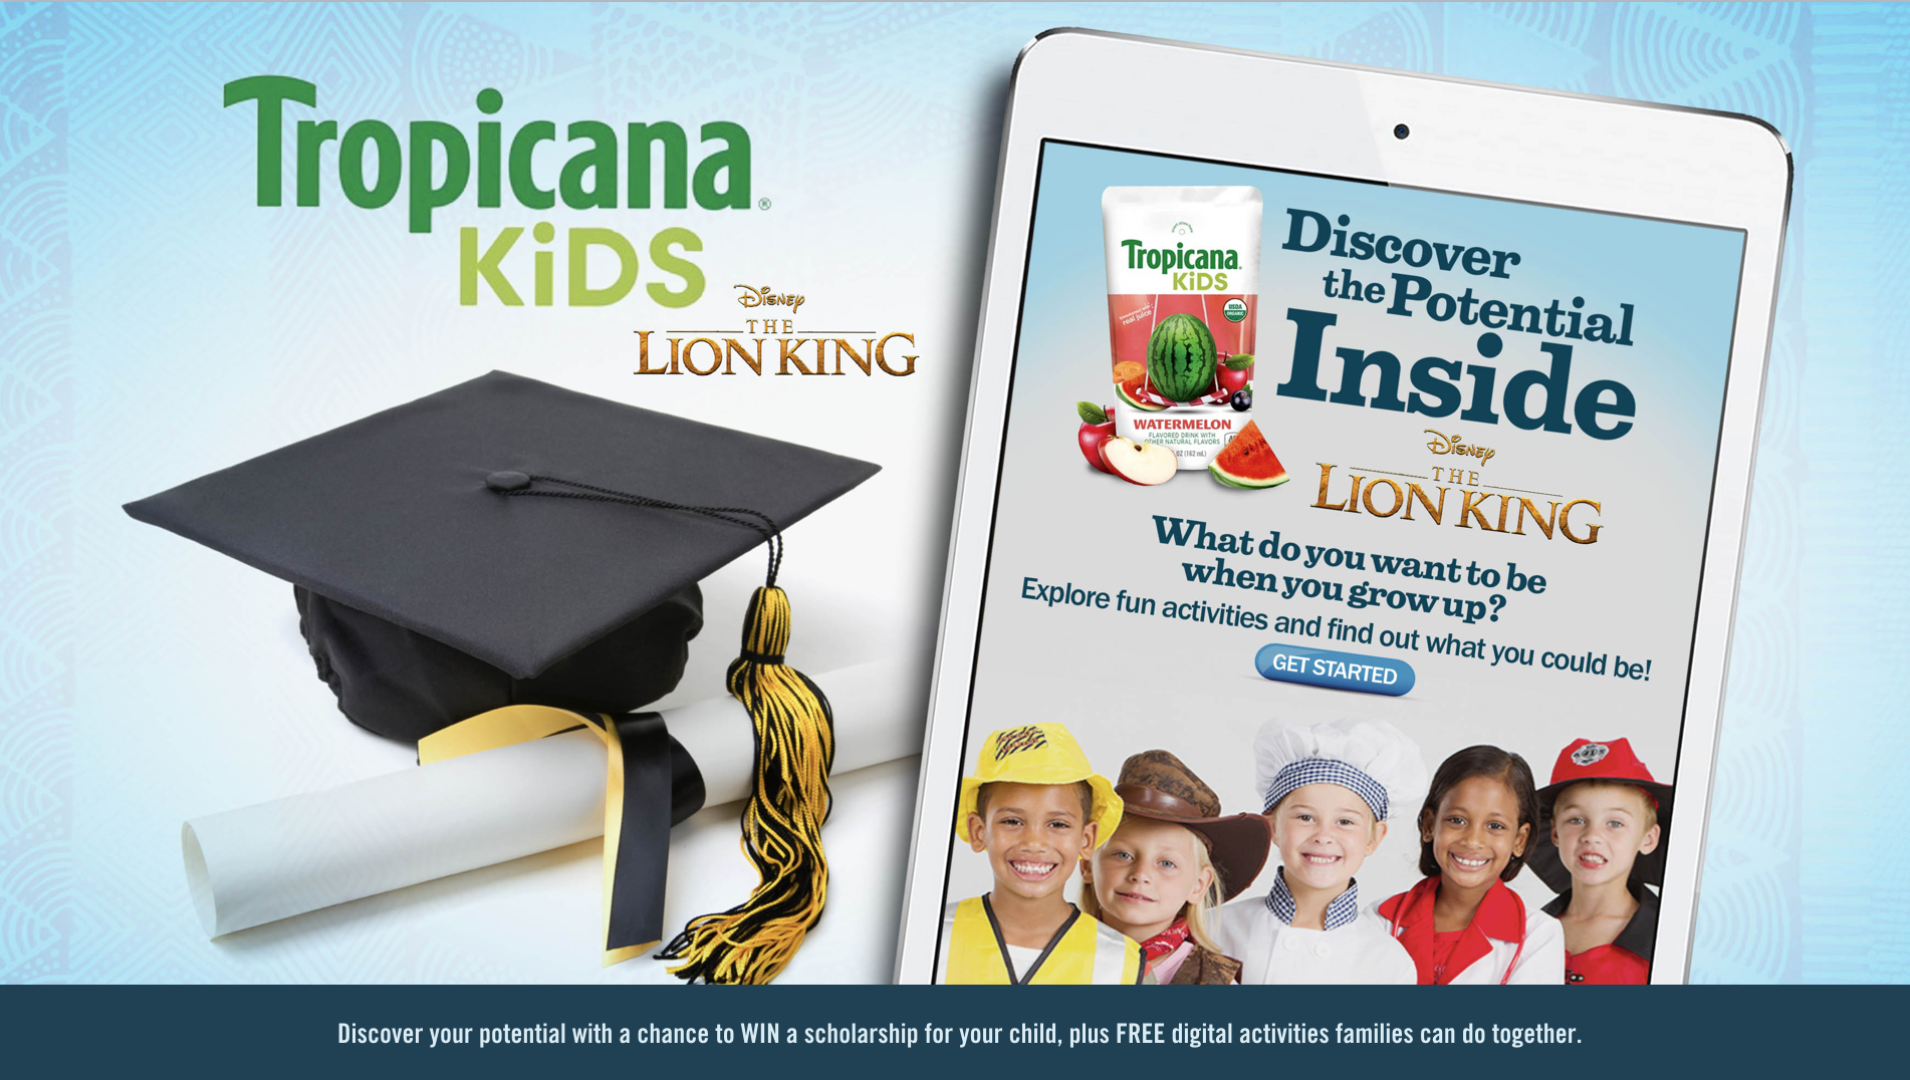 TROPICANA KIDS TIE-IN WITH LION KING